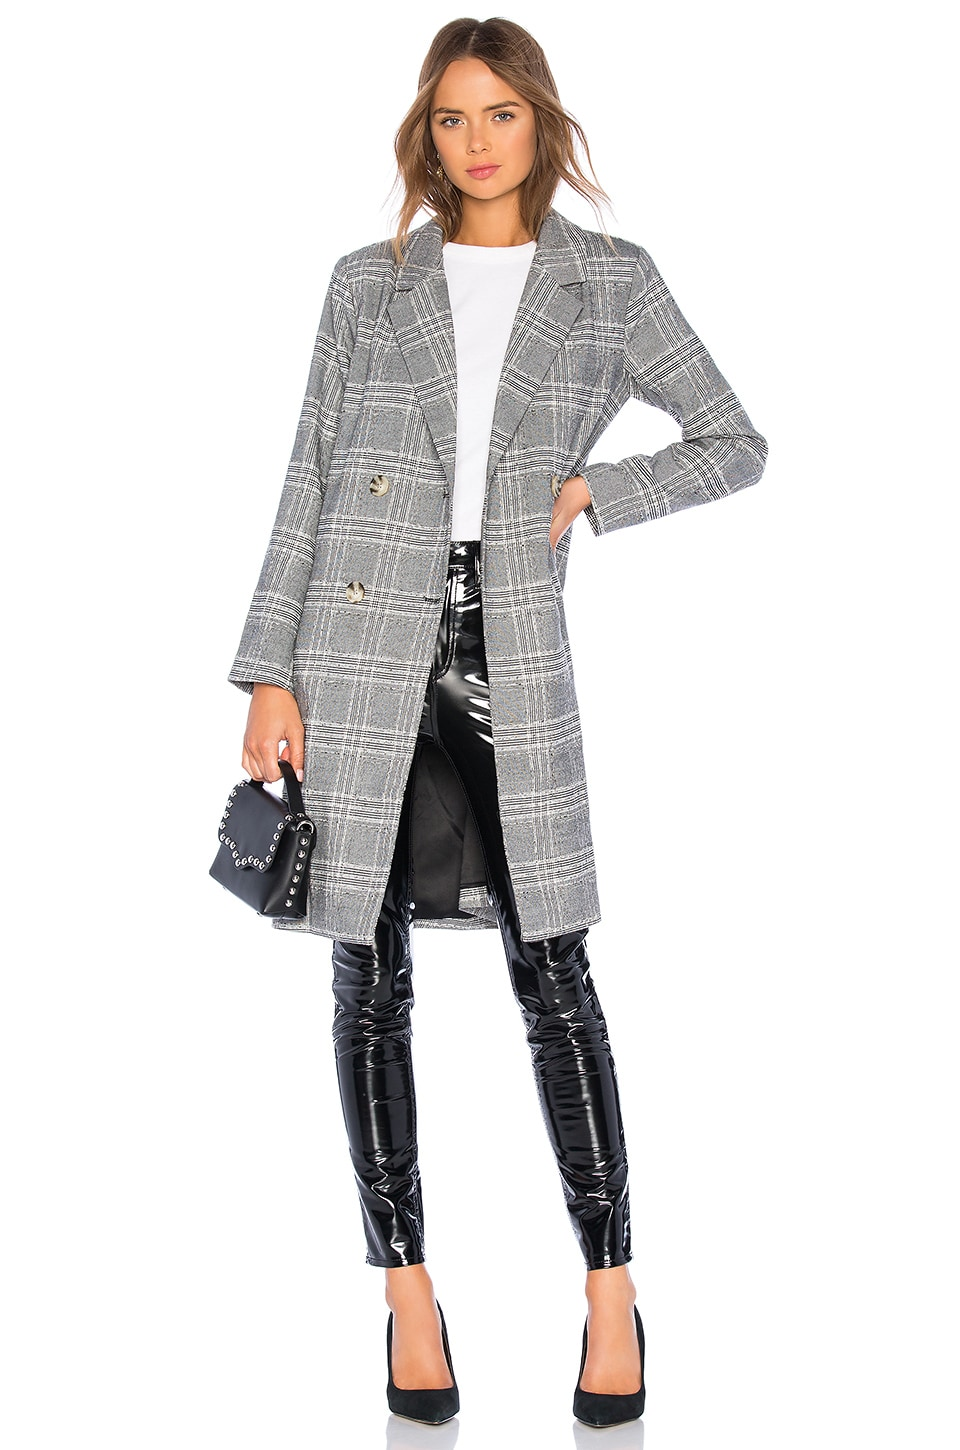 L'Academie The Amira Coat in Grey Plaid